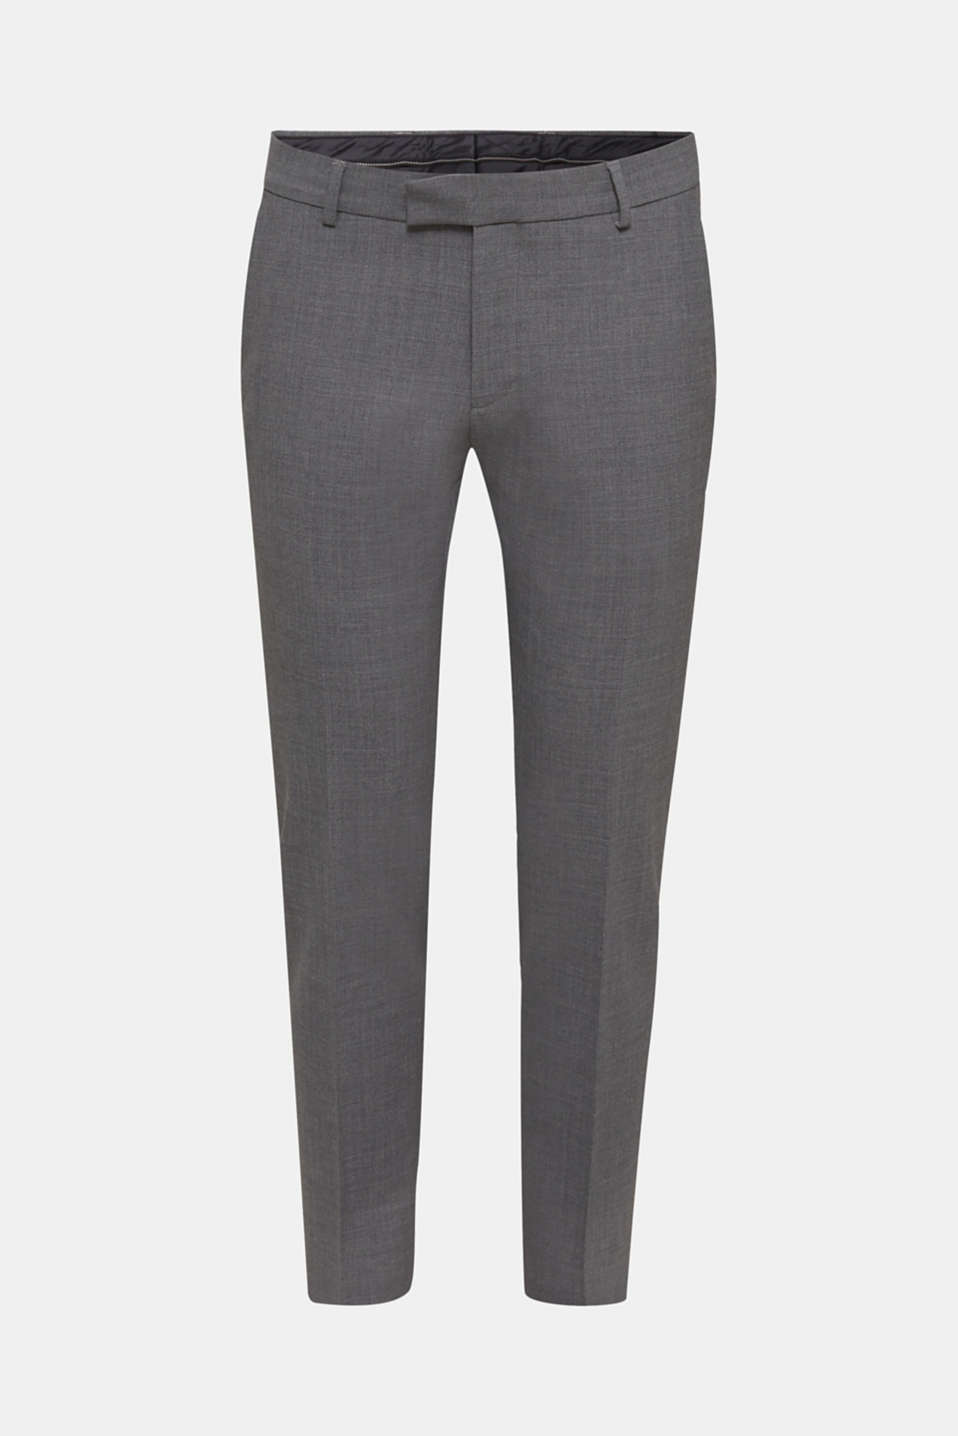 ACTIVE SUIT BLACK trousers made of blended wool, DARK GREY 5, detail image number 6